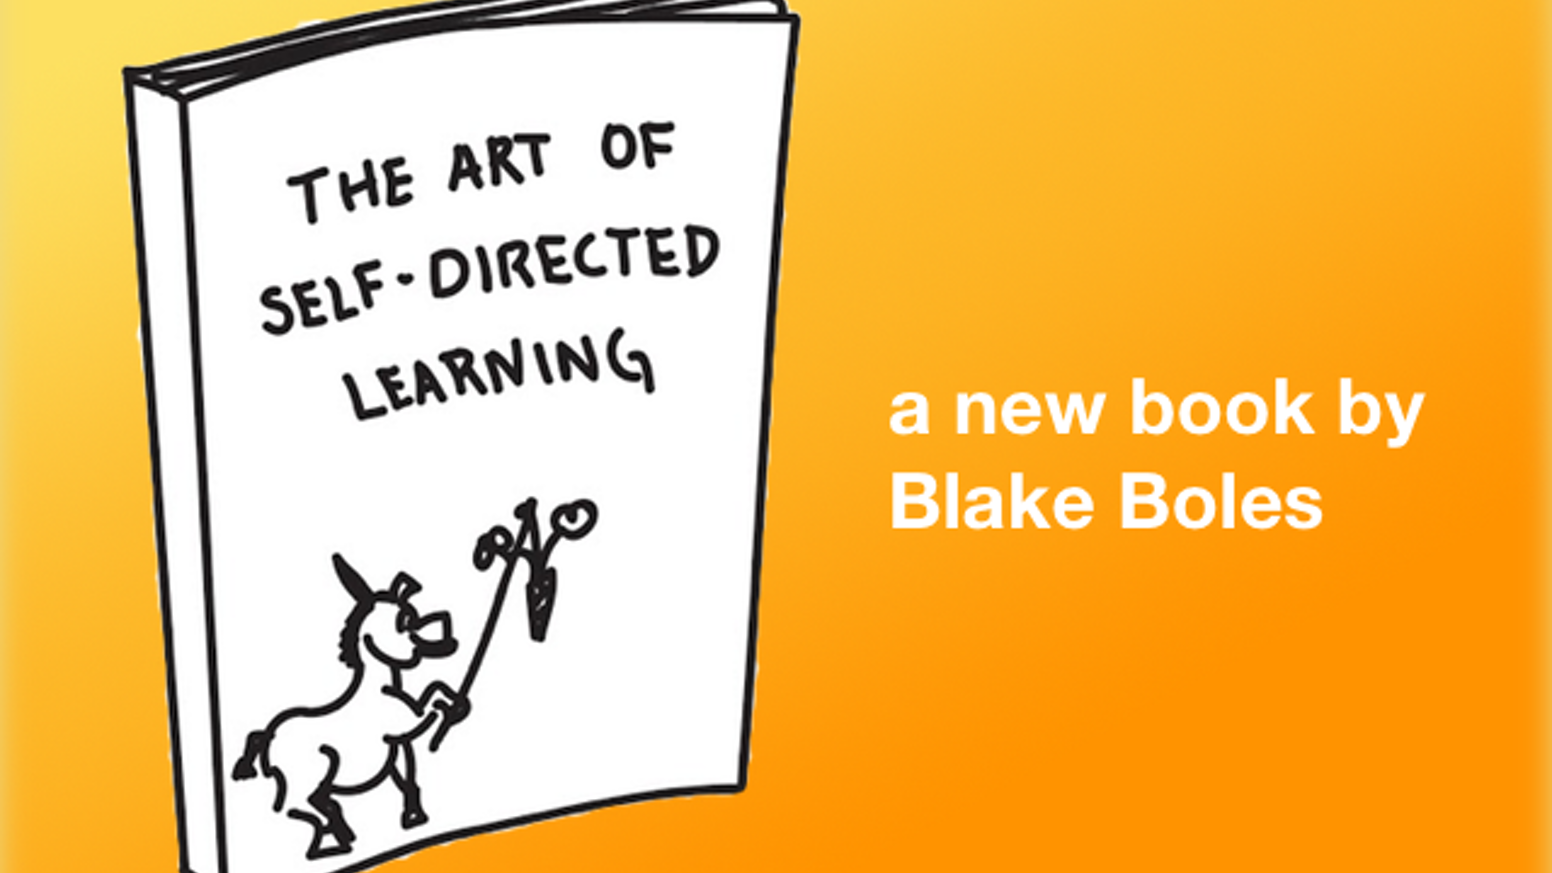 A new book with 23 illustrated stories about giving yourself an unconventional education in a conventional world.